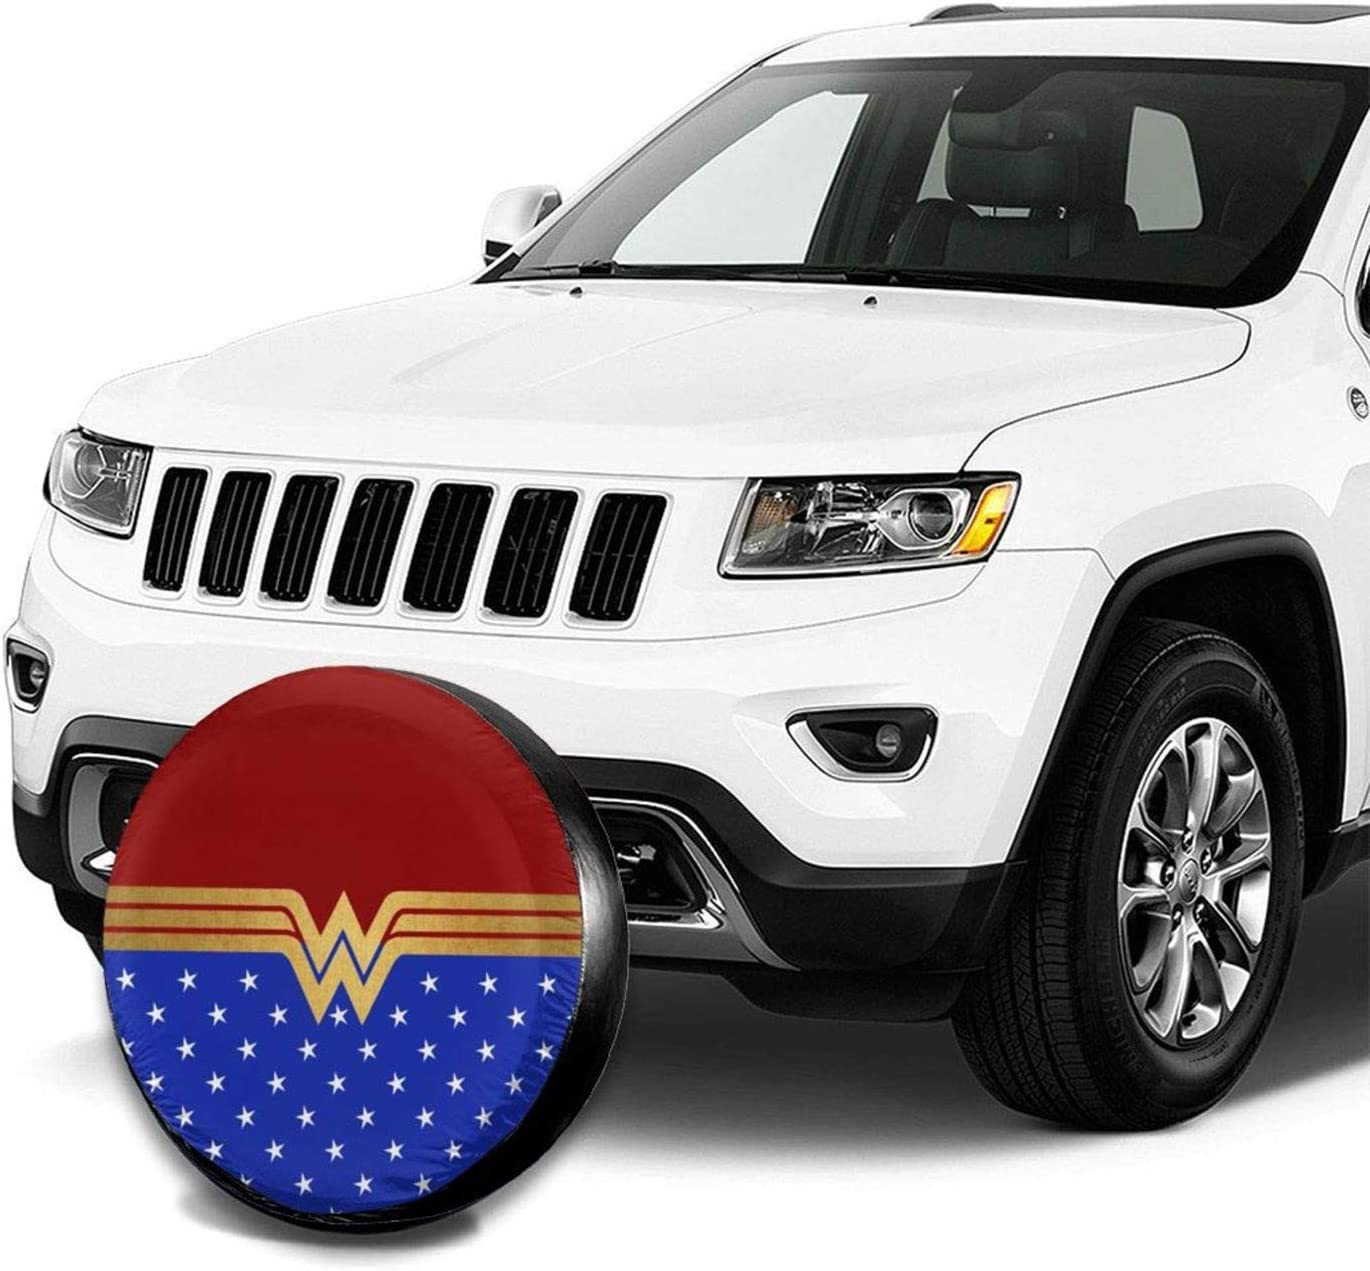 14,15,16,17 Inch Petio Universal Spare Tire Cover Waterproof Dust ...